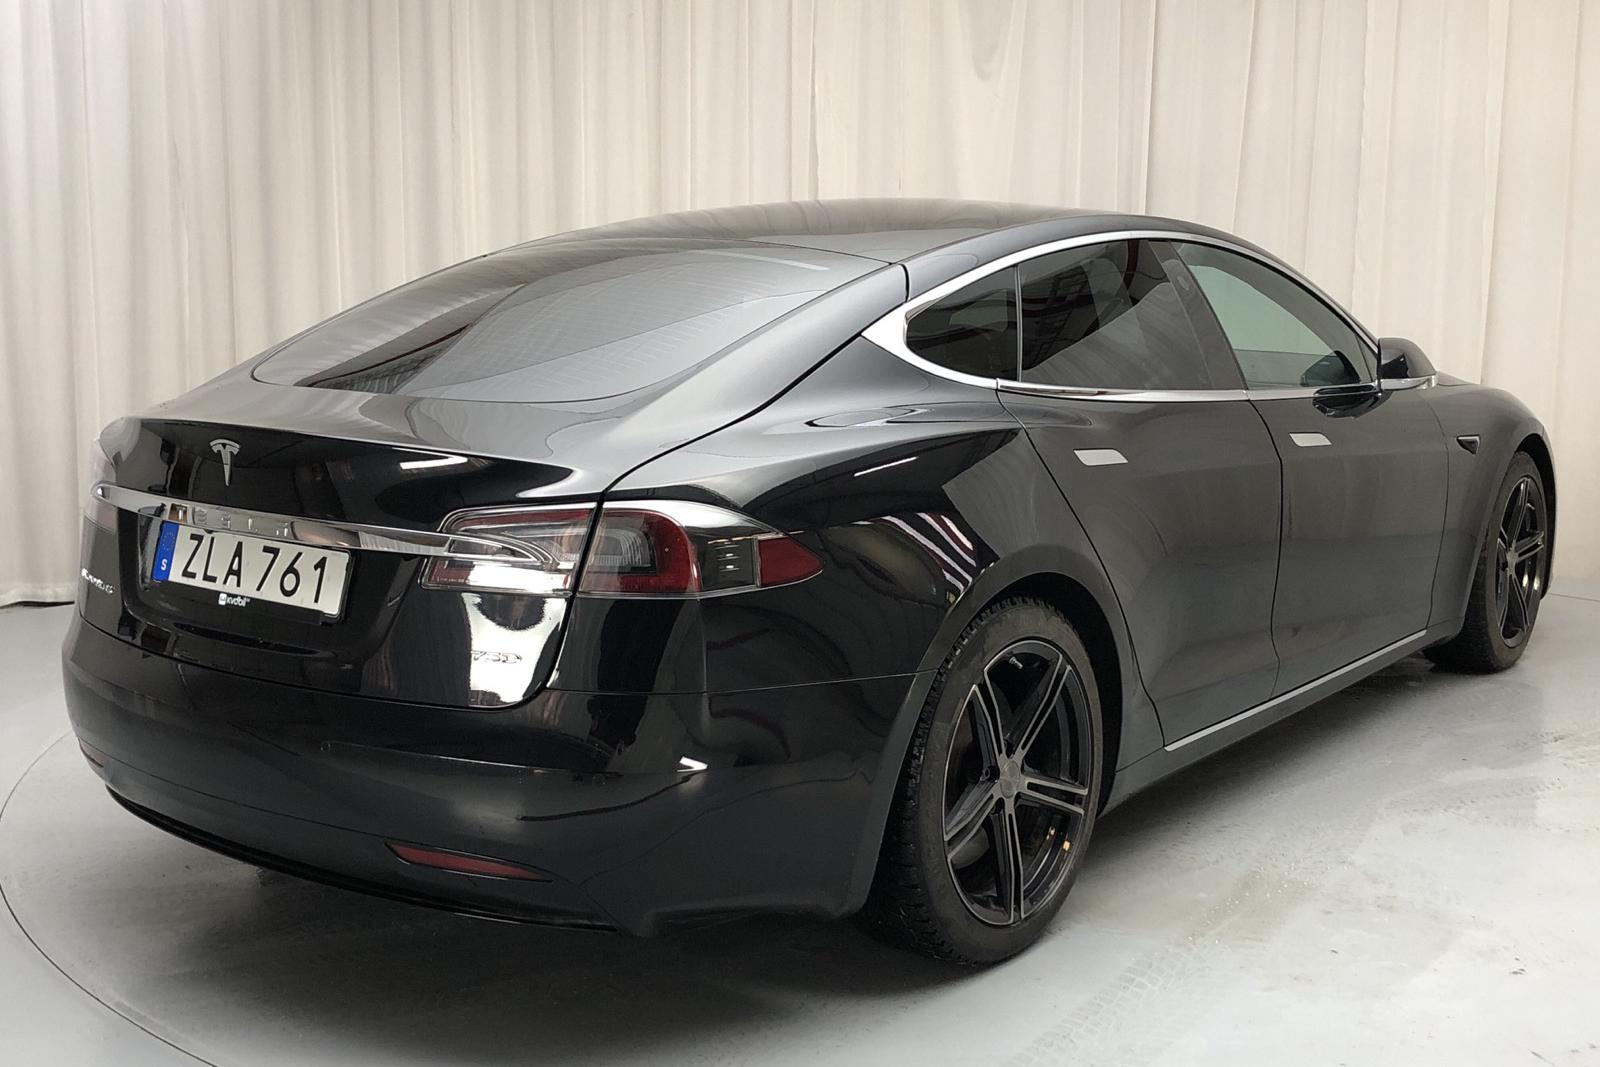 Tesla Model S 75D (525hk) - 47 410 km - Automatic - black - 2018